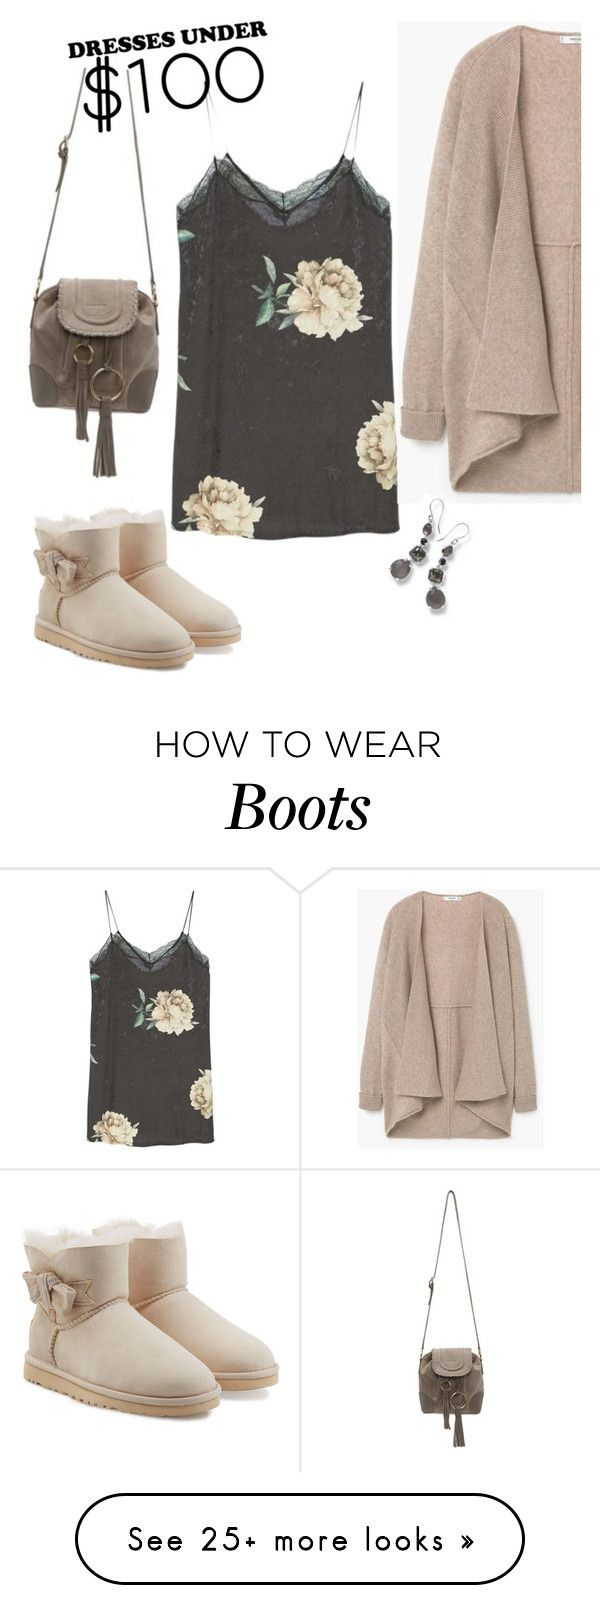 """"""" under 100$"""" by olivia-stones on Polyvore featuring MANGO, UGG Australia, Ippolita, See by Chloé and authentico"""